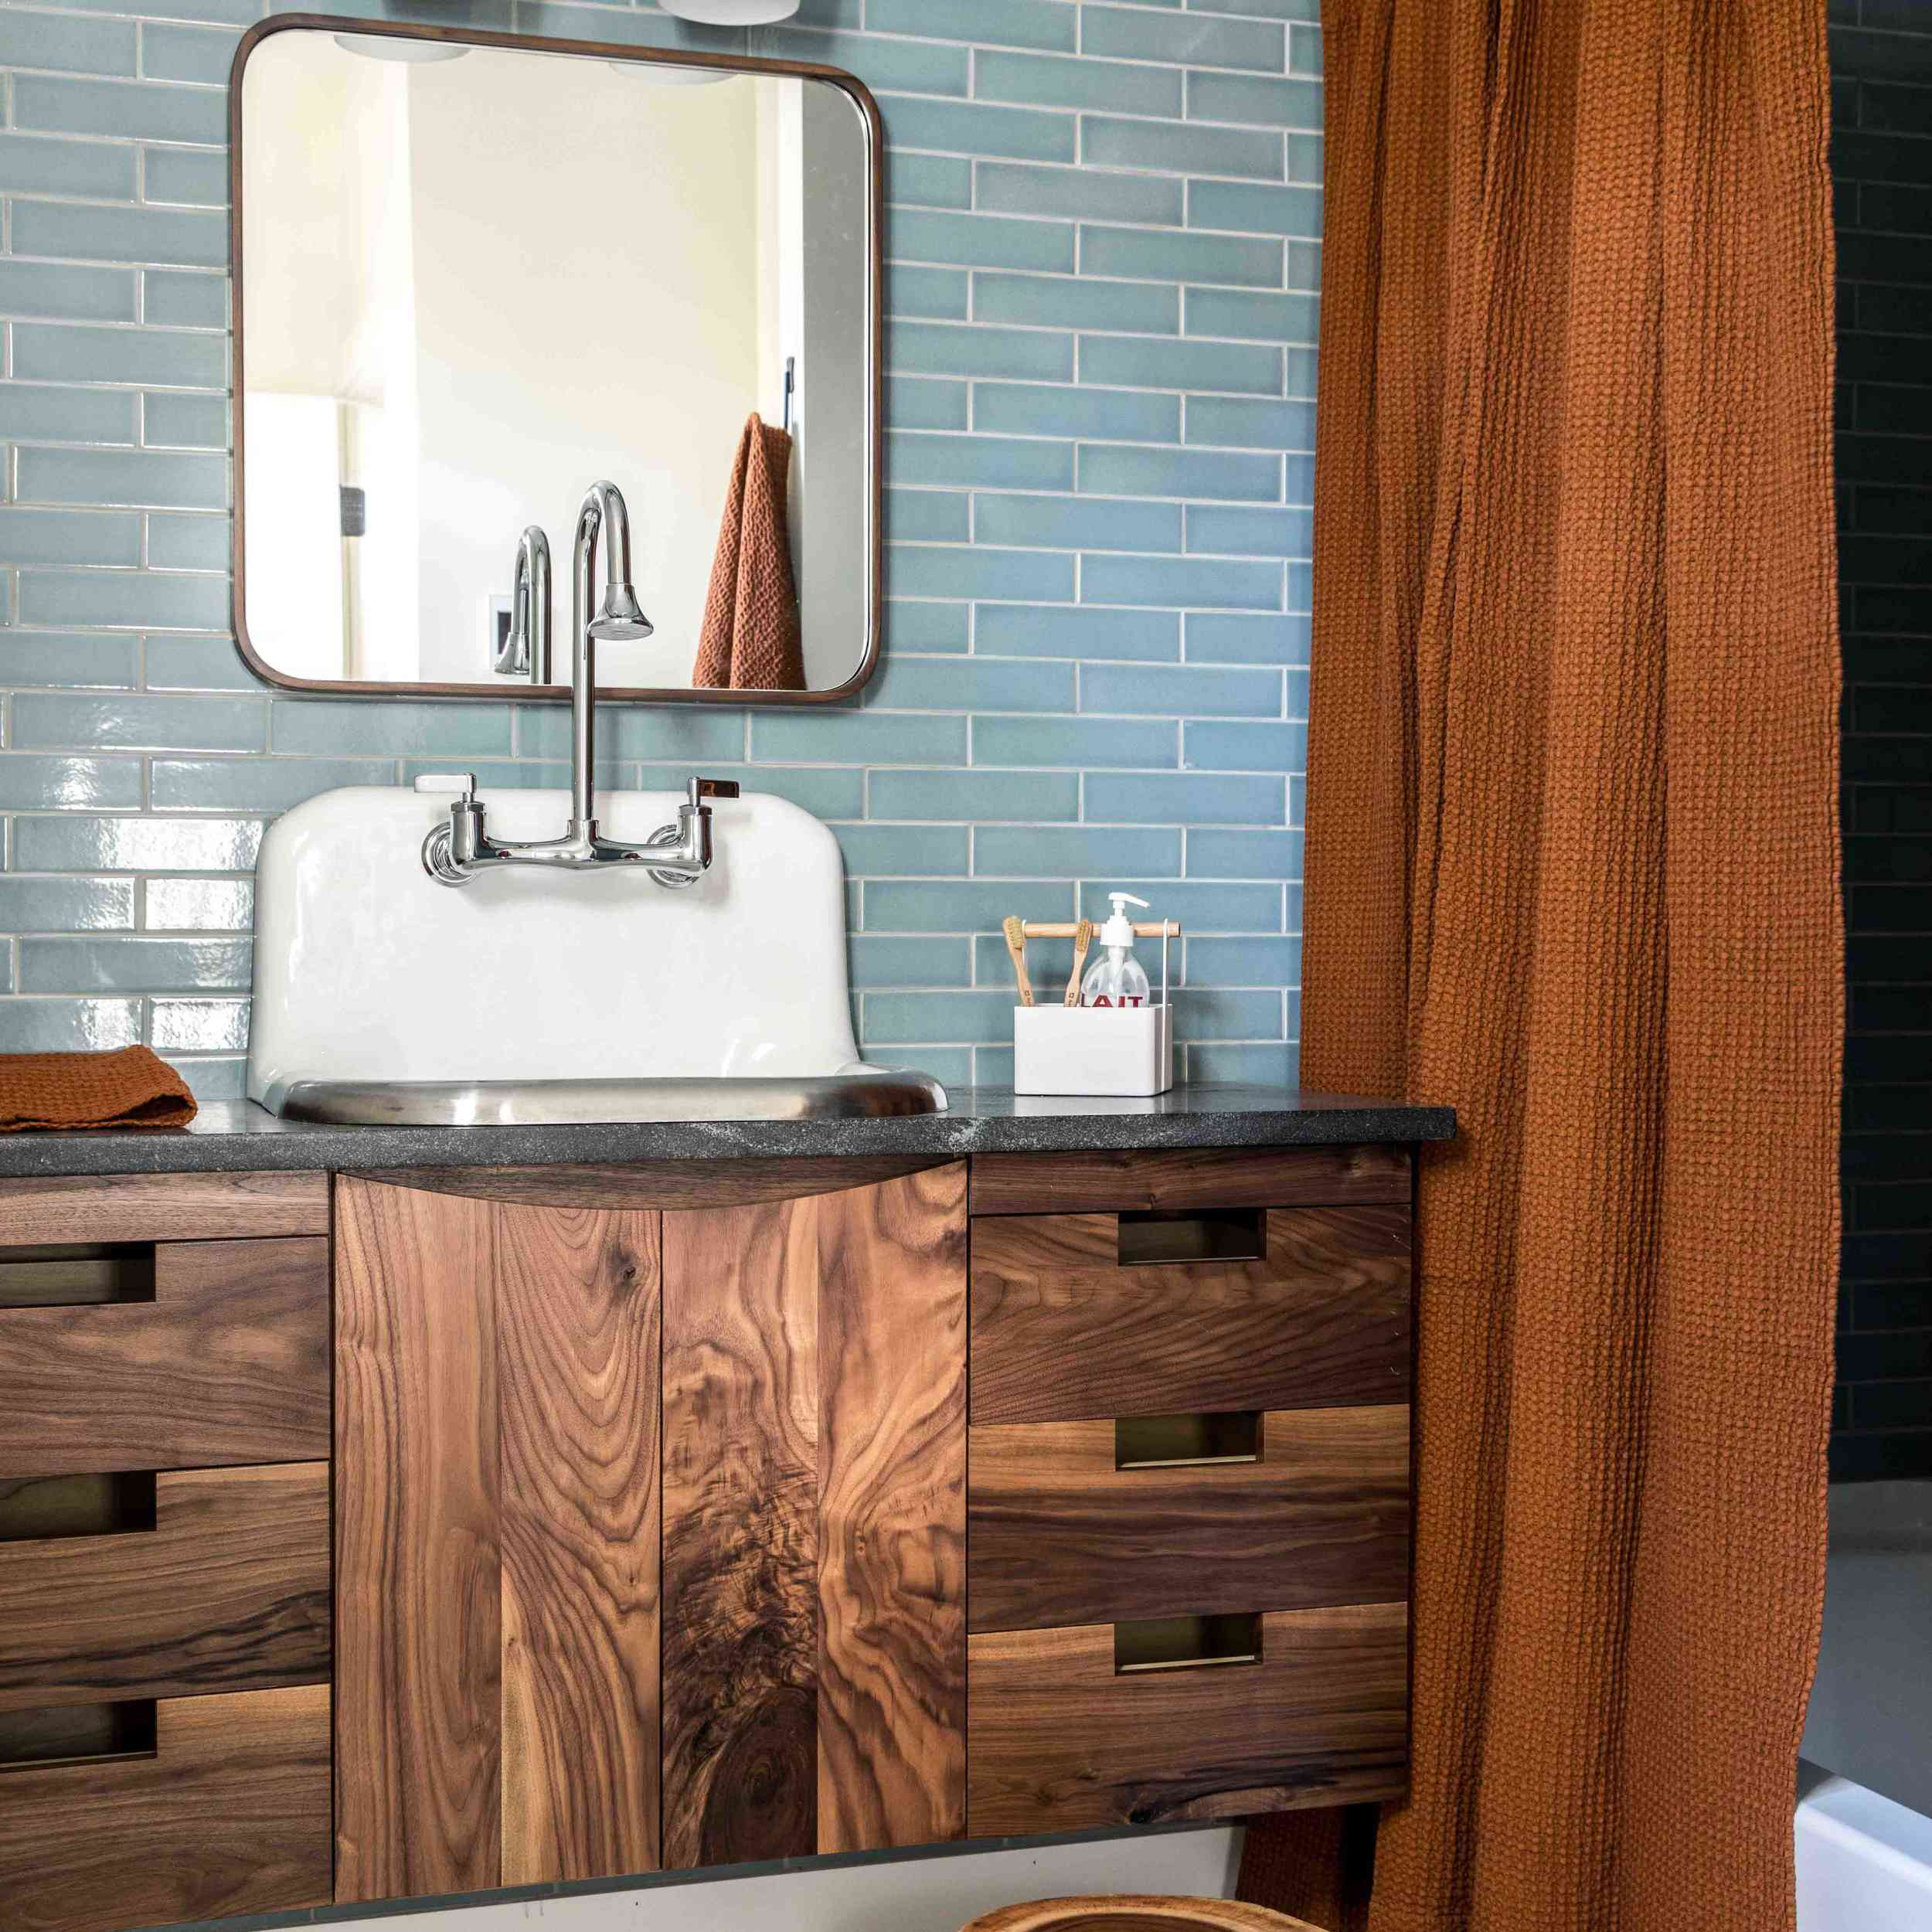 A tile-lined bathroom with a white sink that has a built-in backsplash